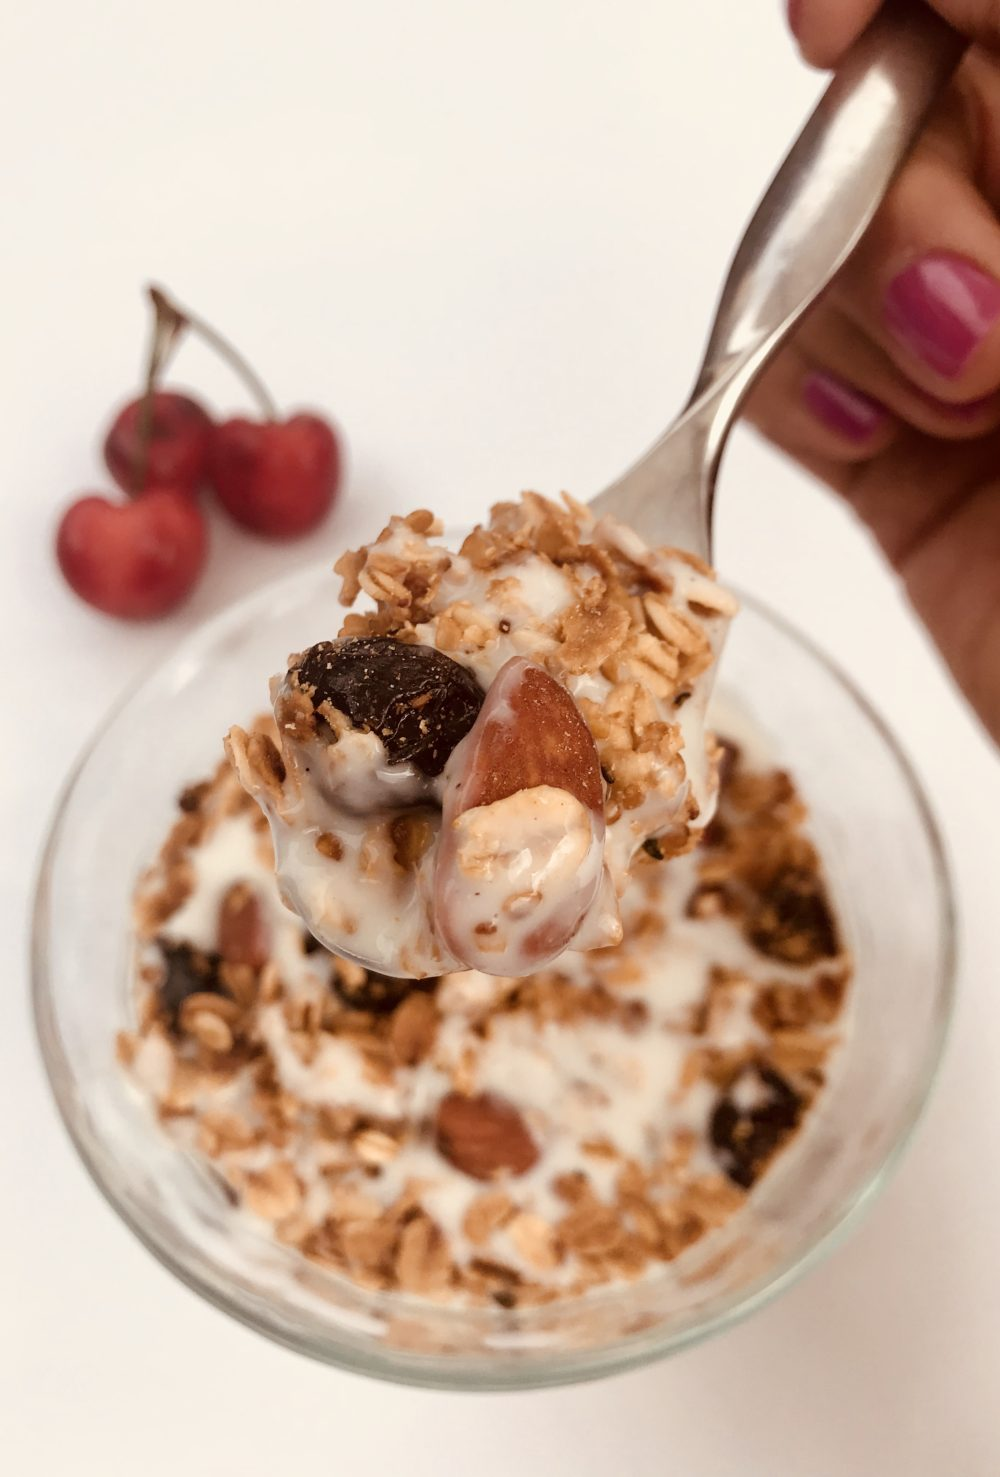 Cherry almond granola makes your cells sing